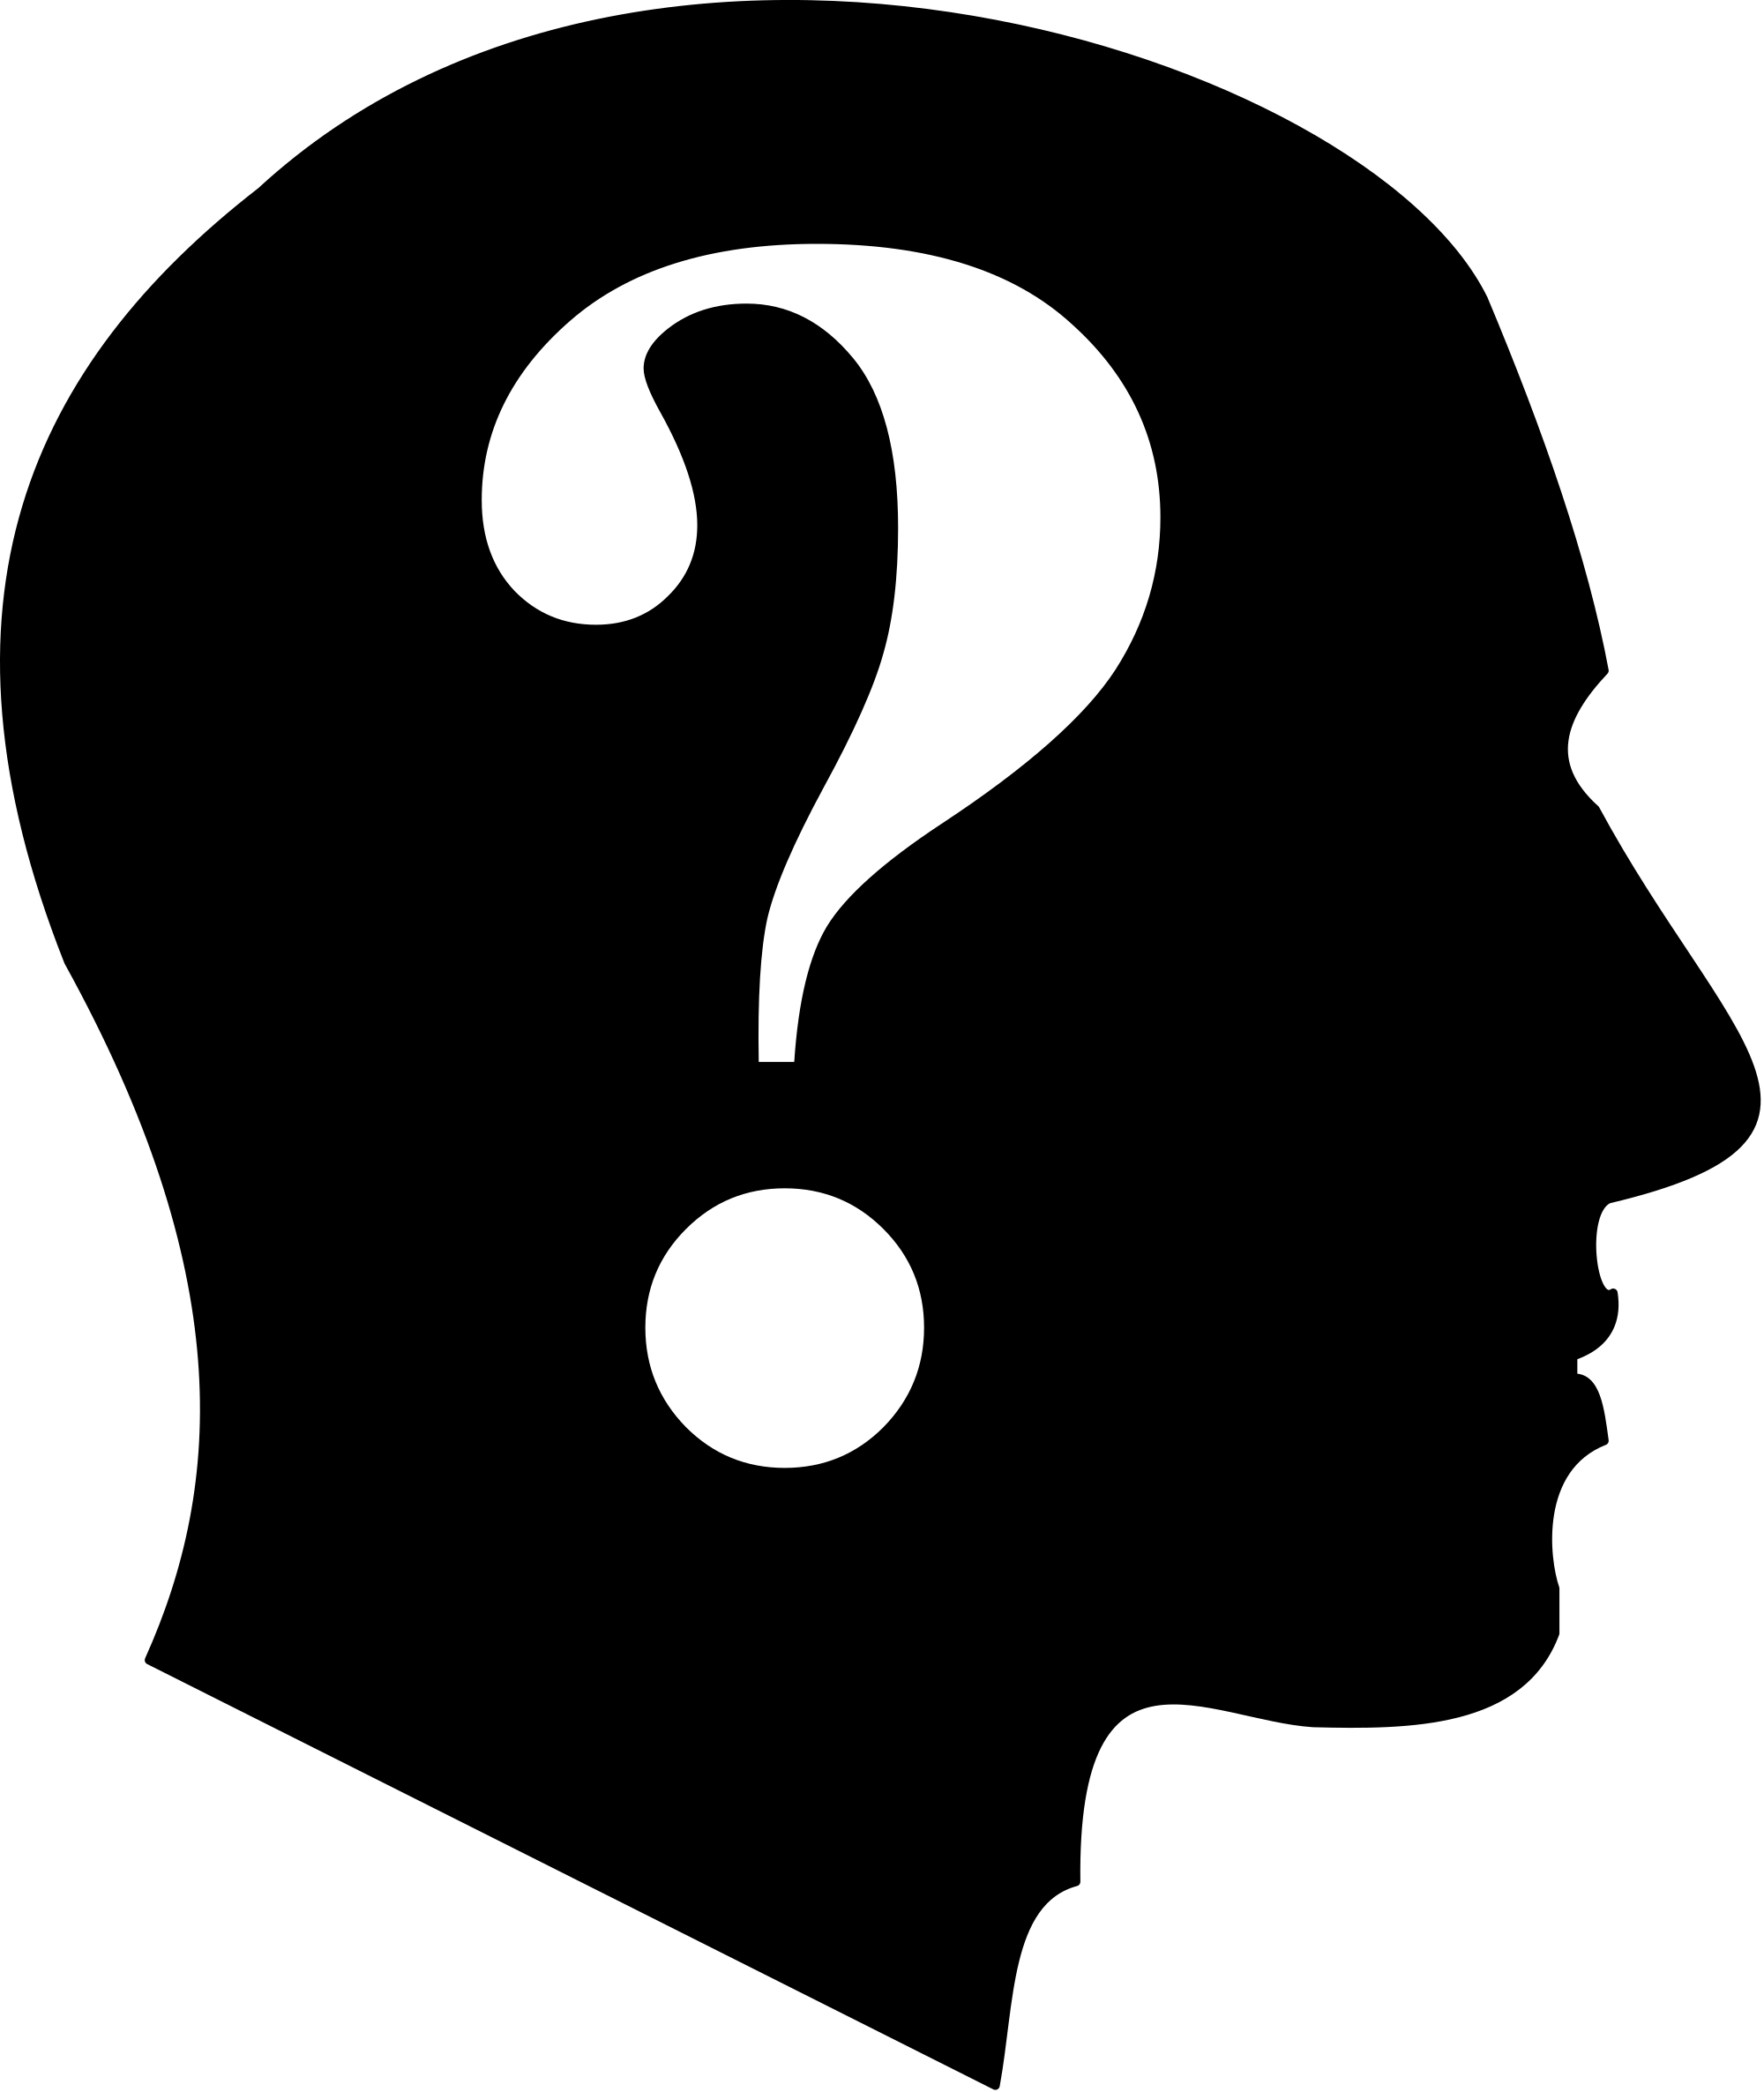 Mystery clipart unknown person. File lost or svg